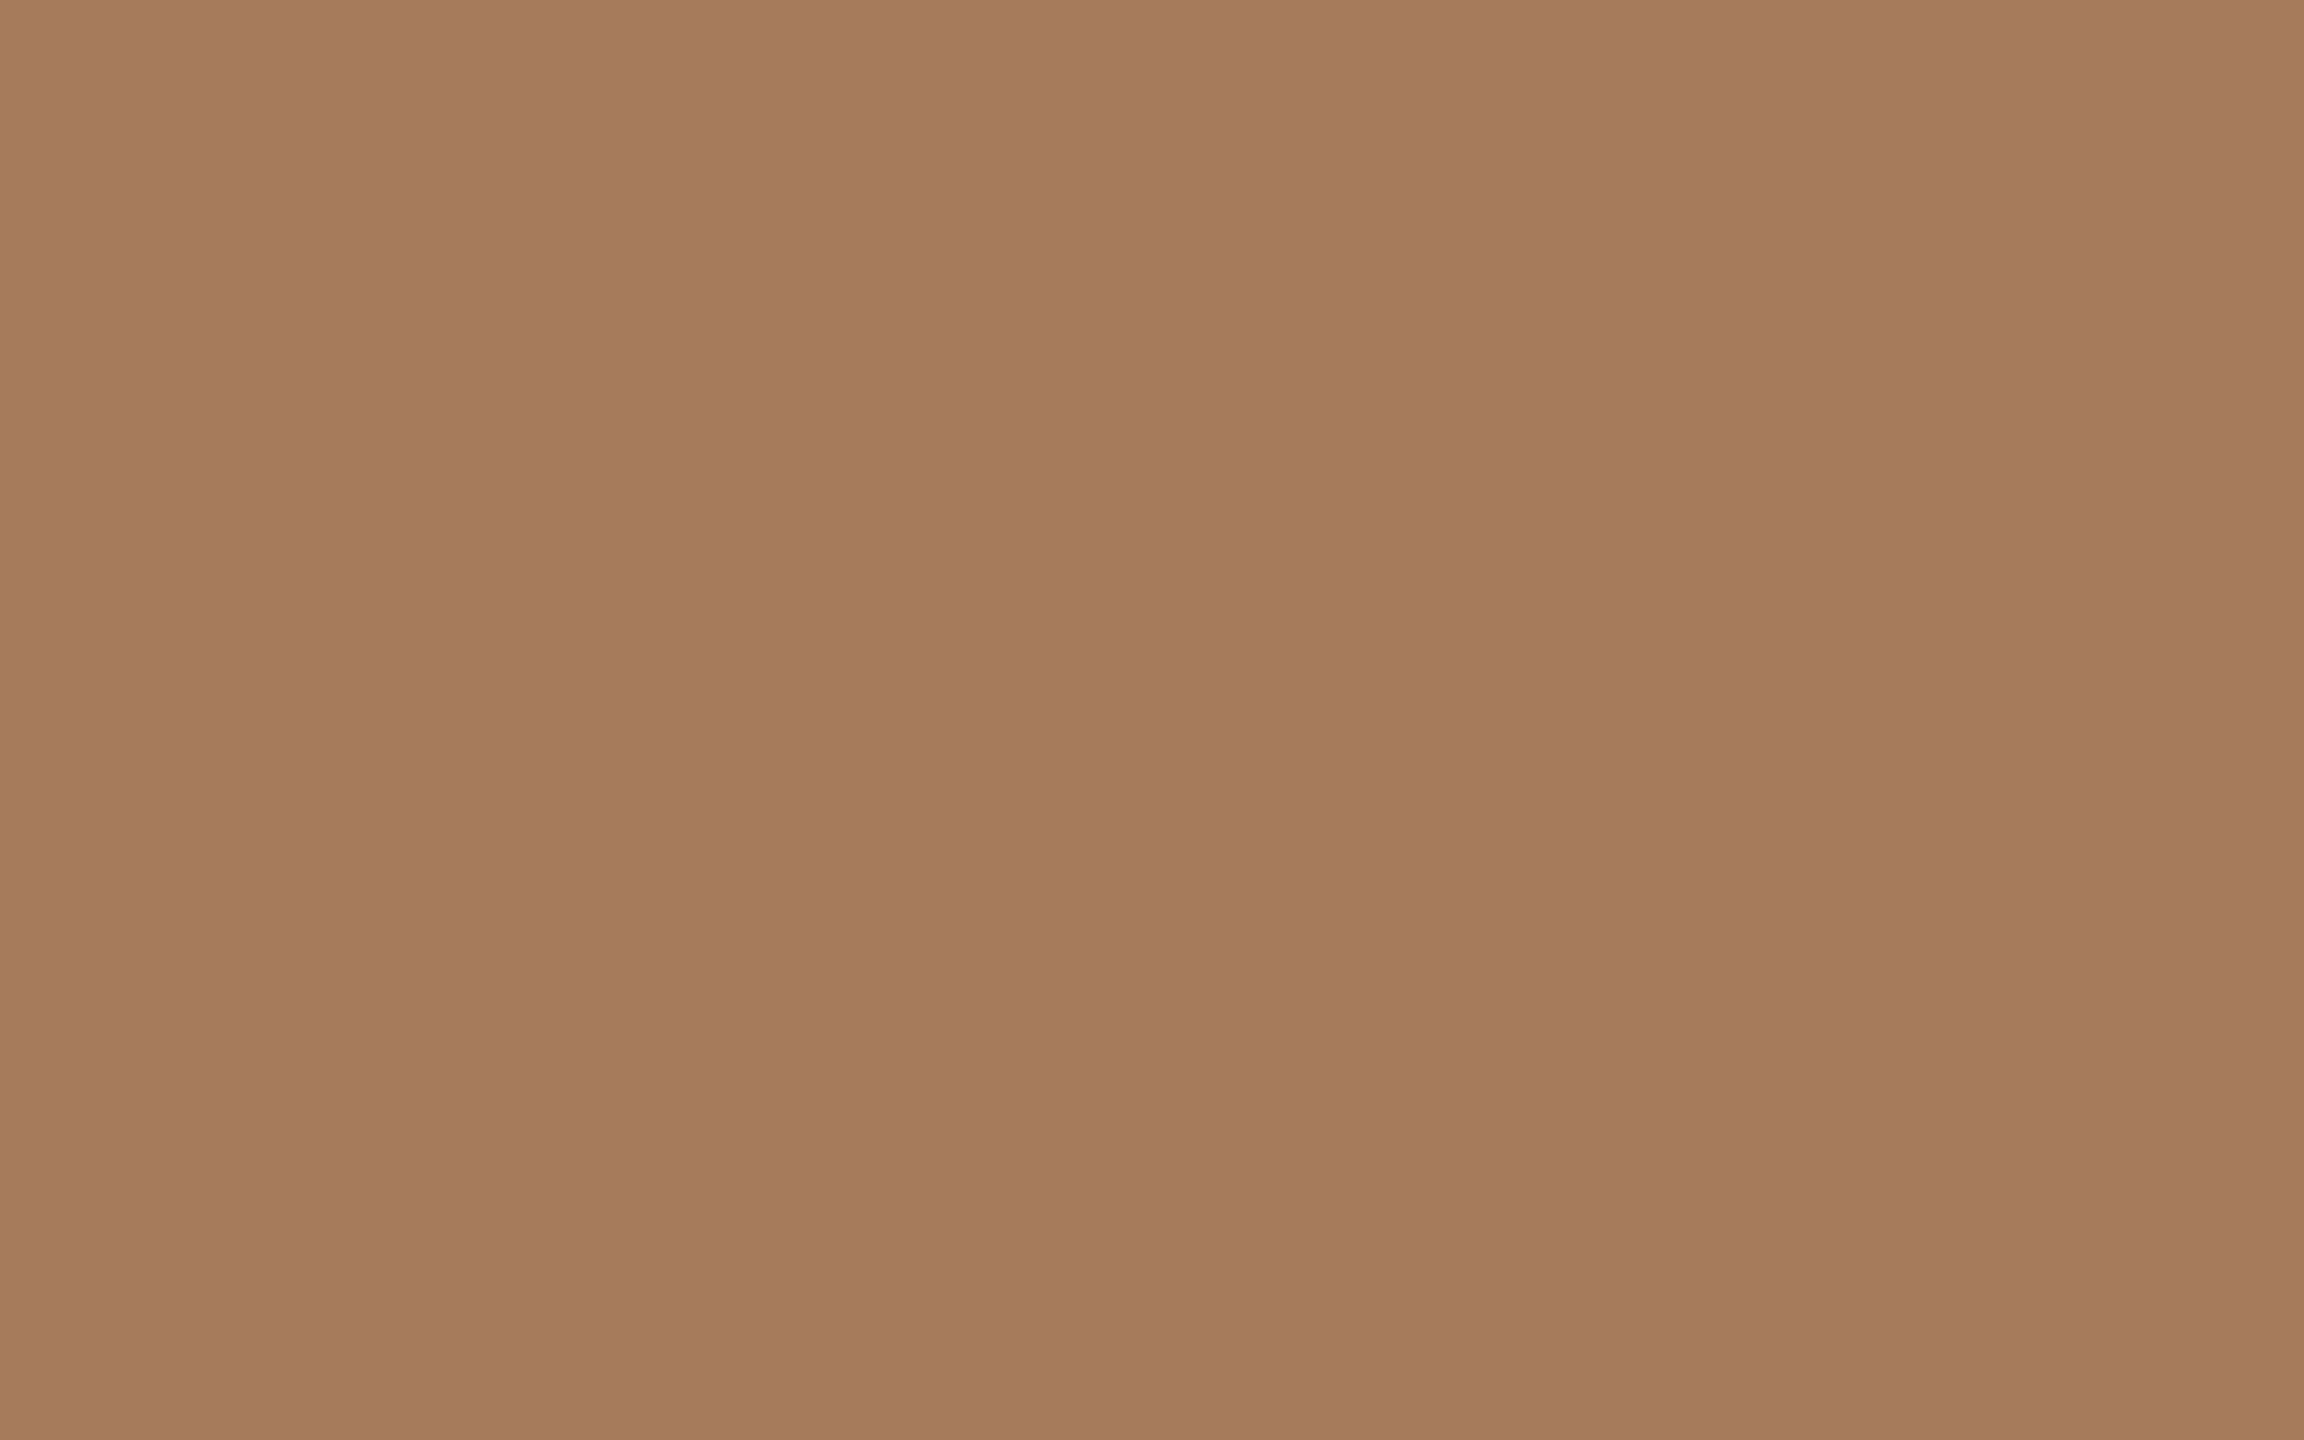 2304x1440 Tuscan Tan Solid Color Background